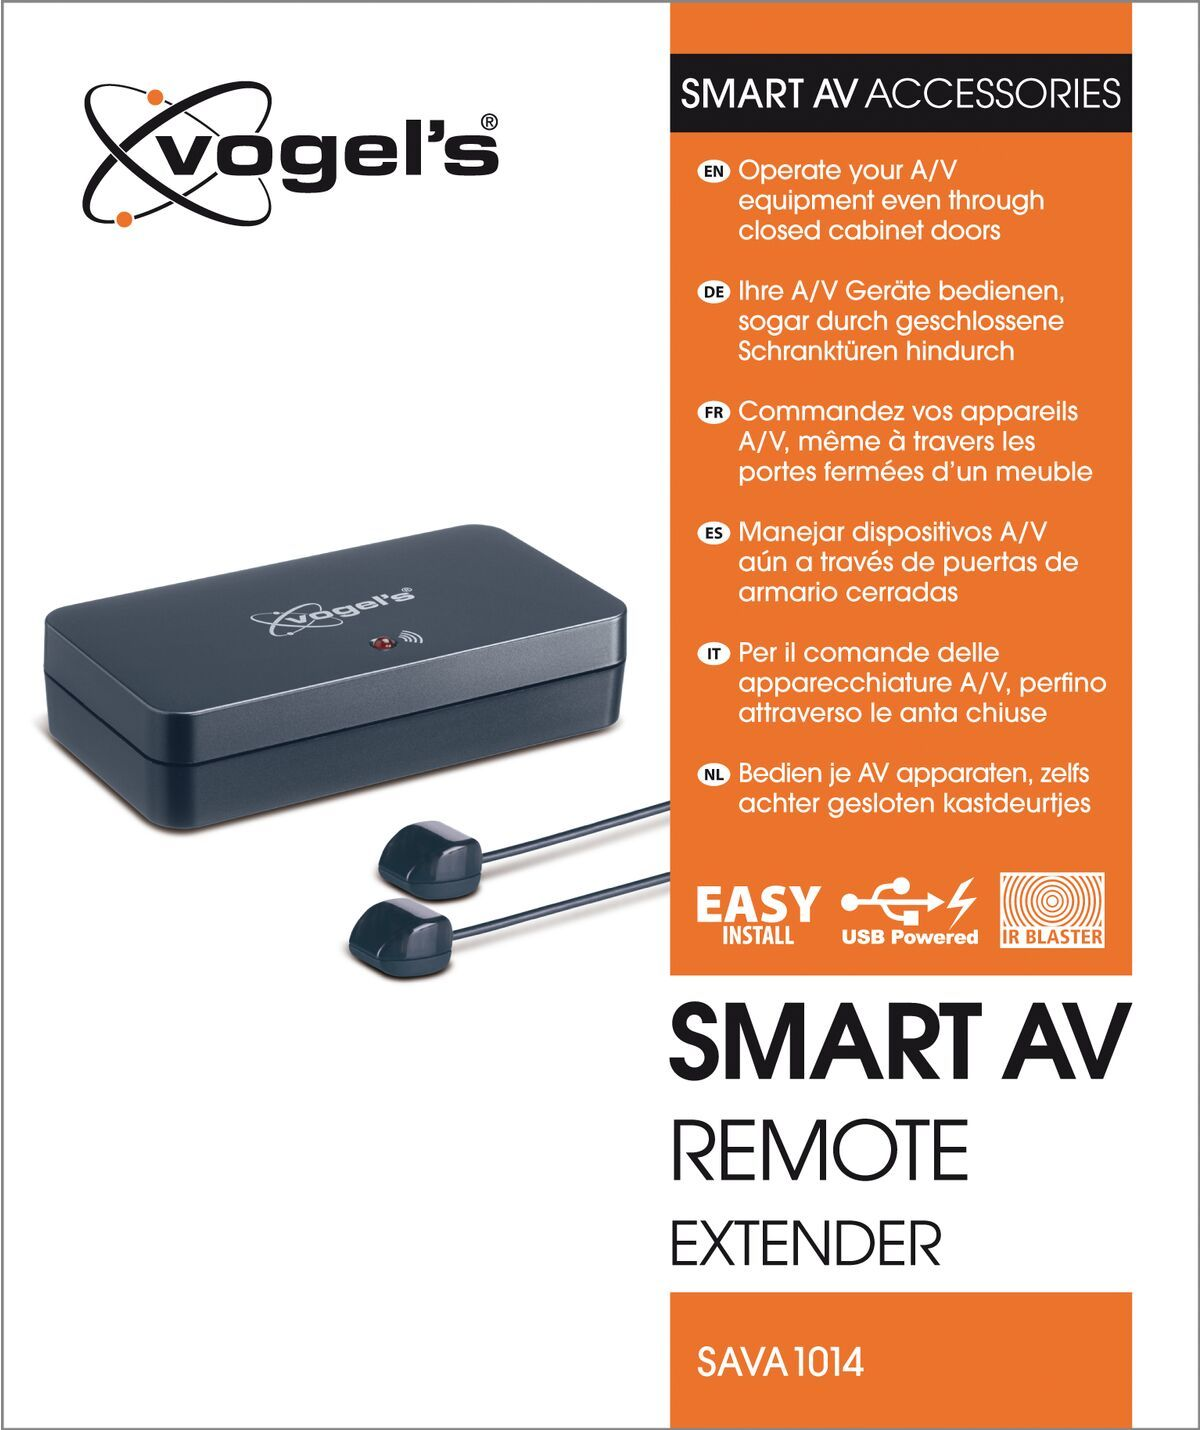 Vogel's SAVA 1014 Smart AV remote extender - Packaging front